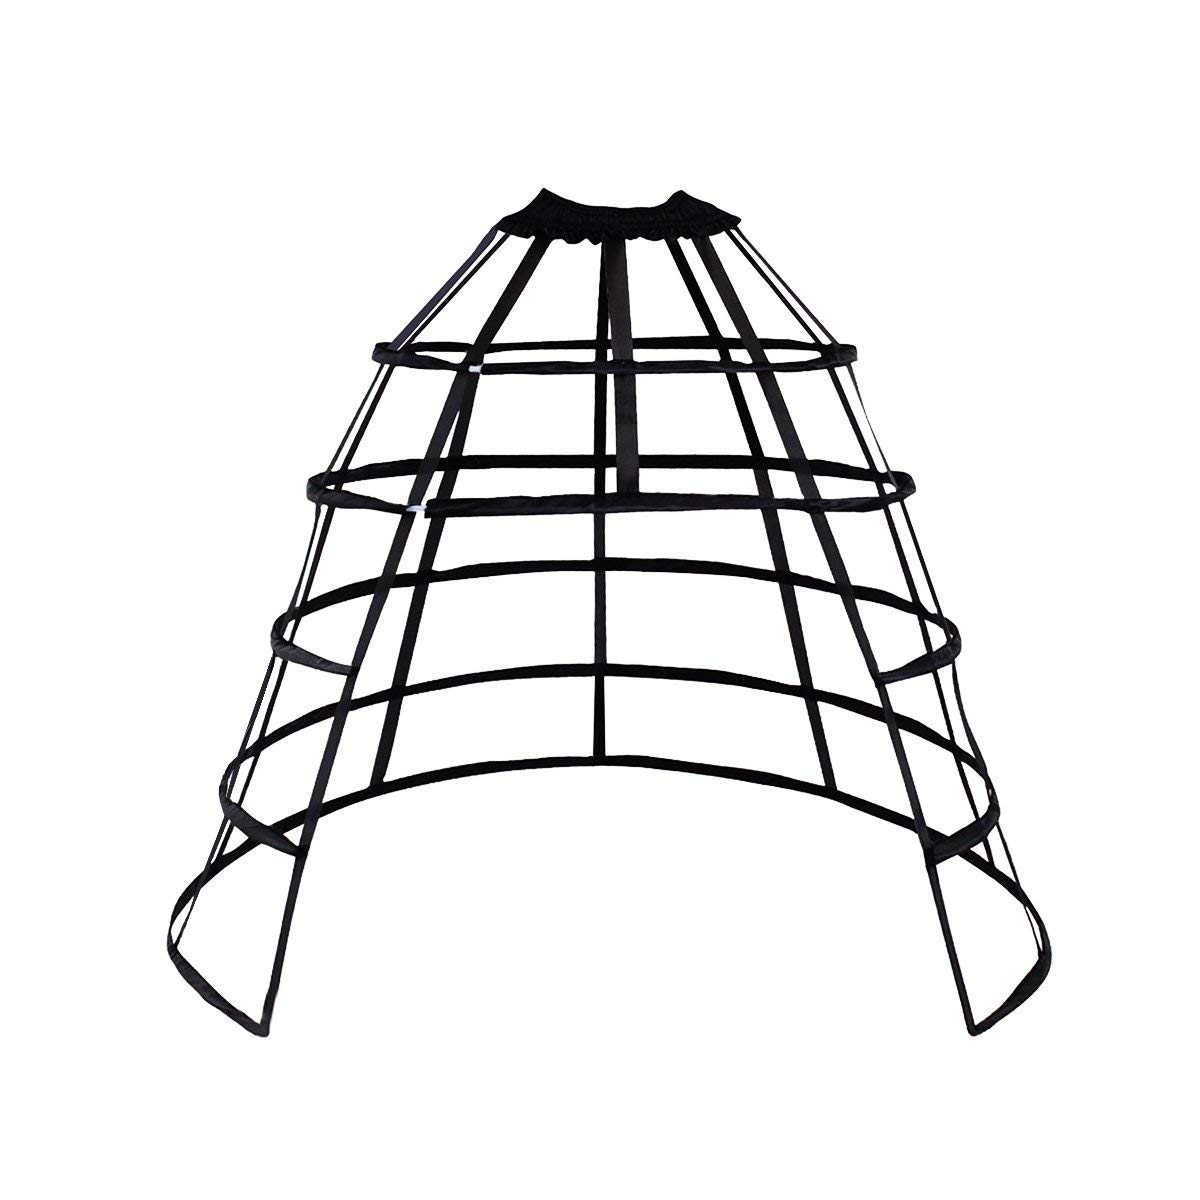 1840-1850s Dickens Victorian Costuming for Women HappyStory Cage Hoop Skirt Petticoat Dress Pannier 5 Hoops Bustle Cage Crinoline $29.99 AT vintagedancer.com